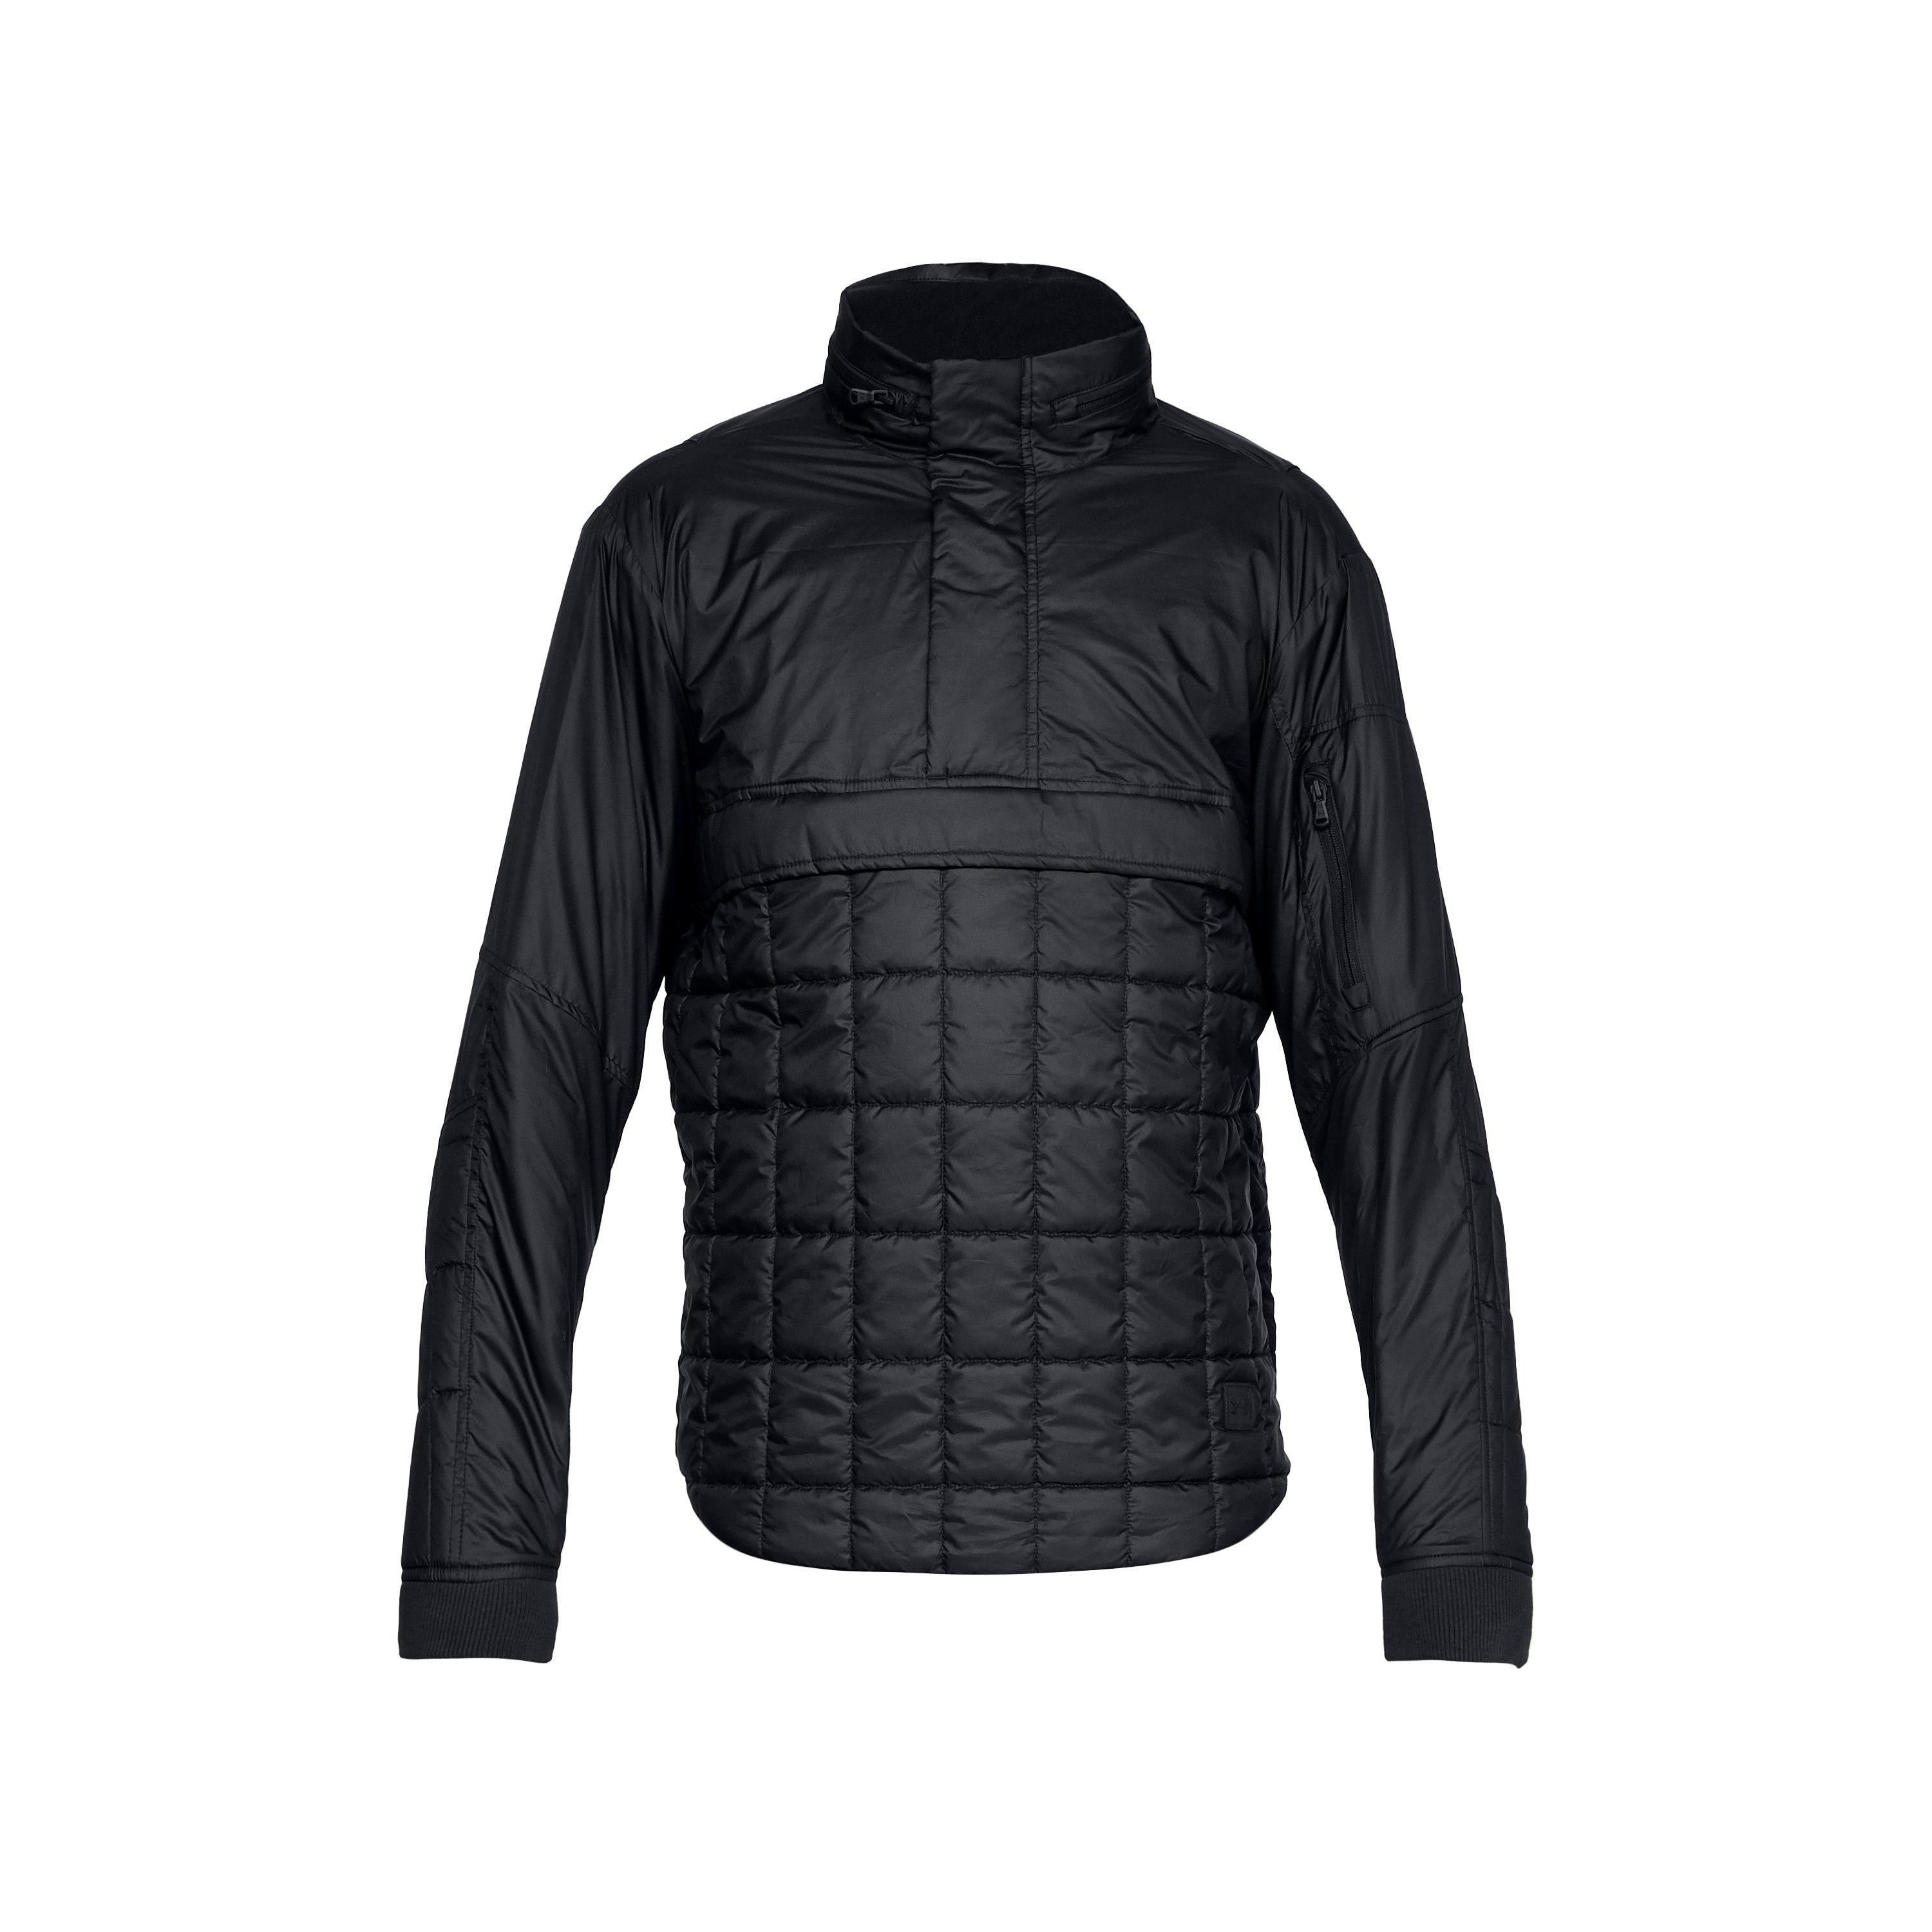 Under Armour Mens Perpetual Insulated Top